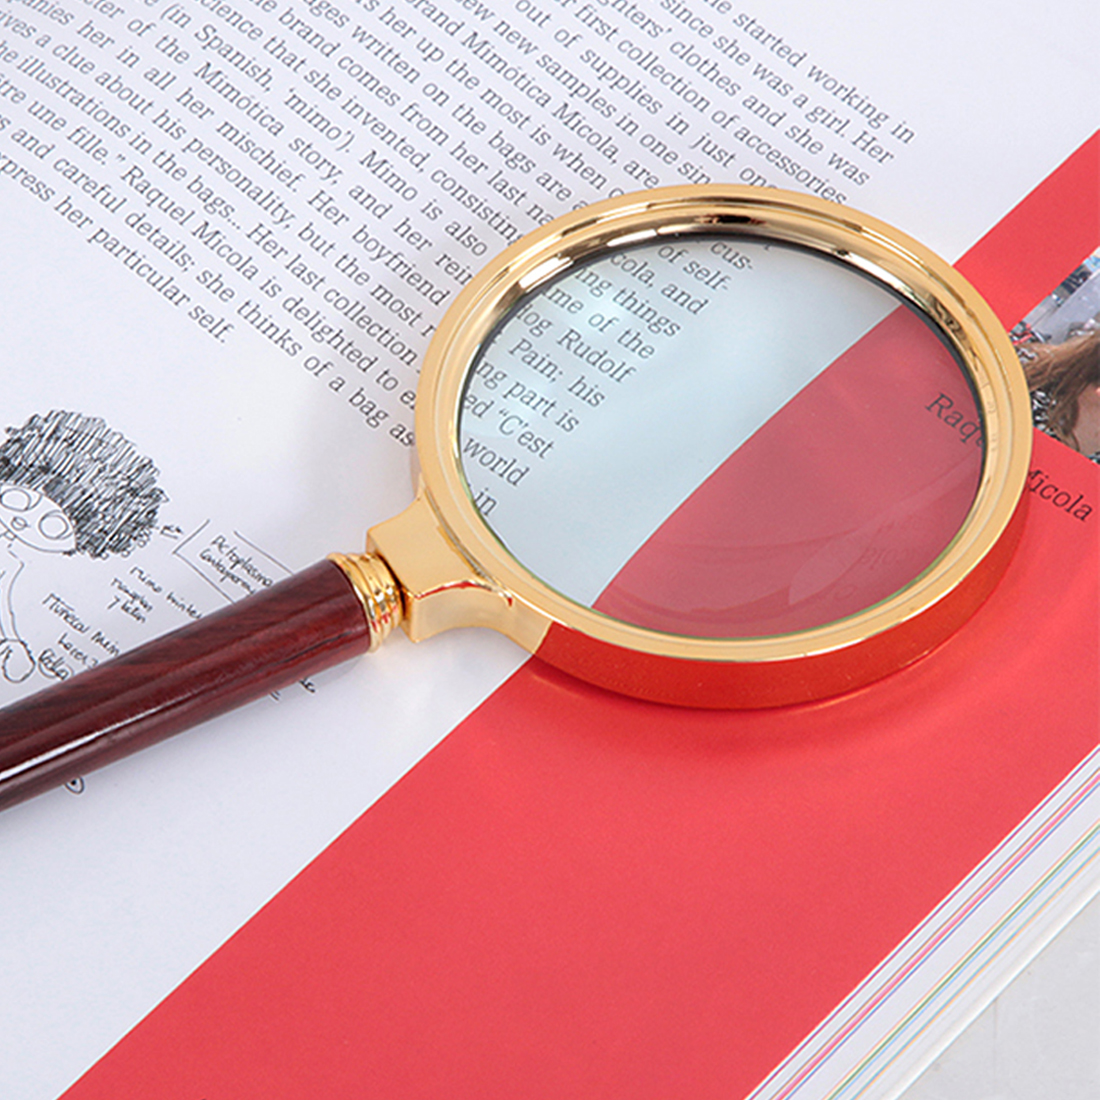 60mm 10X Magnifying Glass Portable Loupe Handheld Magnifier for Reading Jewelry Mini Pocket Magnifier new universal desktop magnifier usb with led light 10x for maintenance reading micro engraving magnifying glass